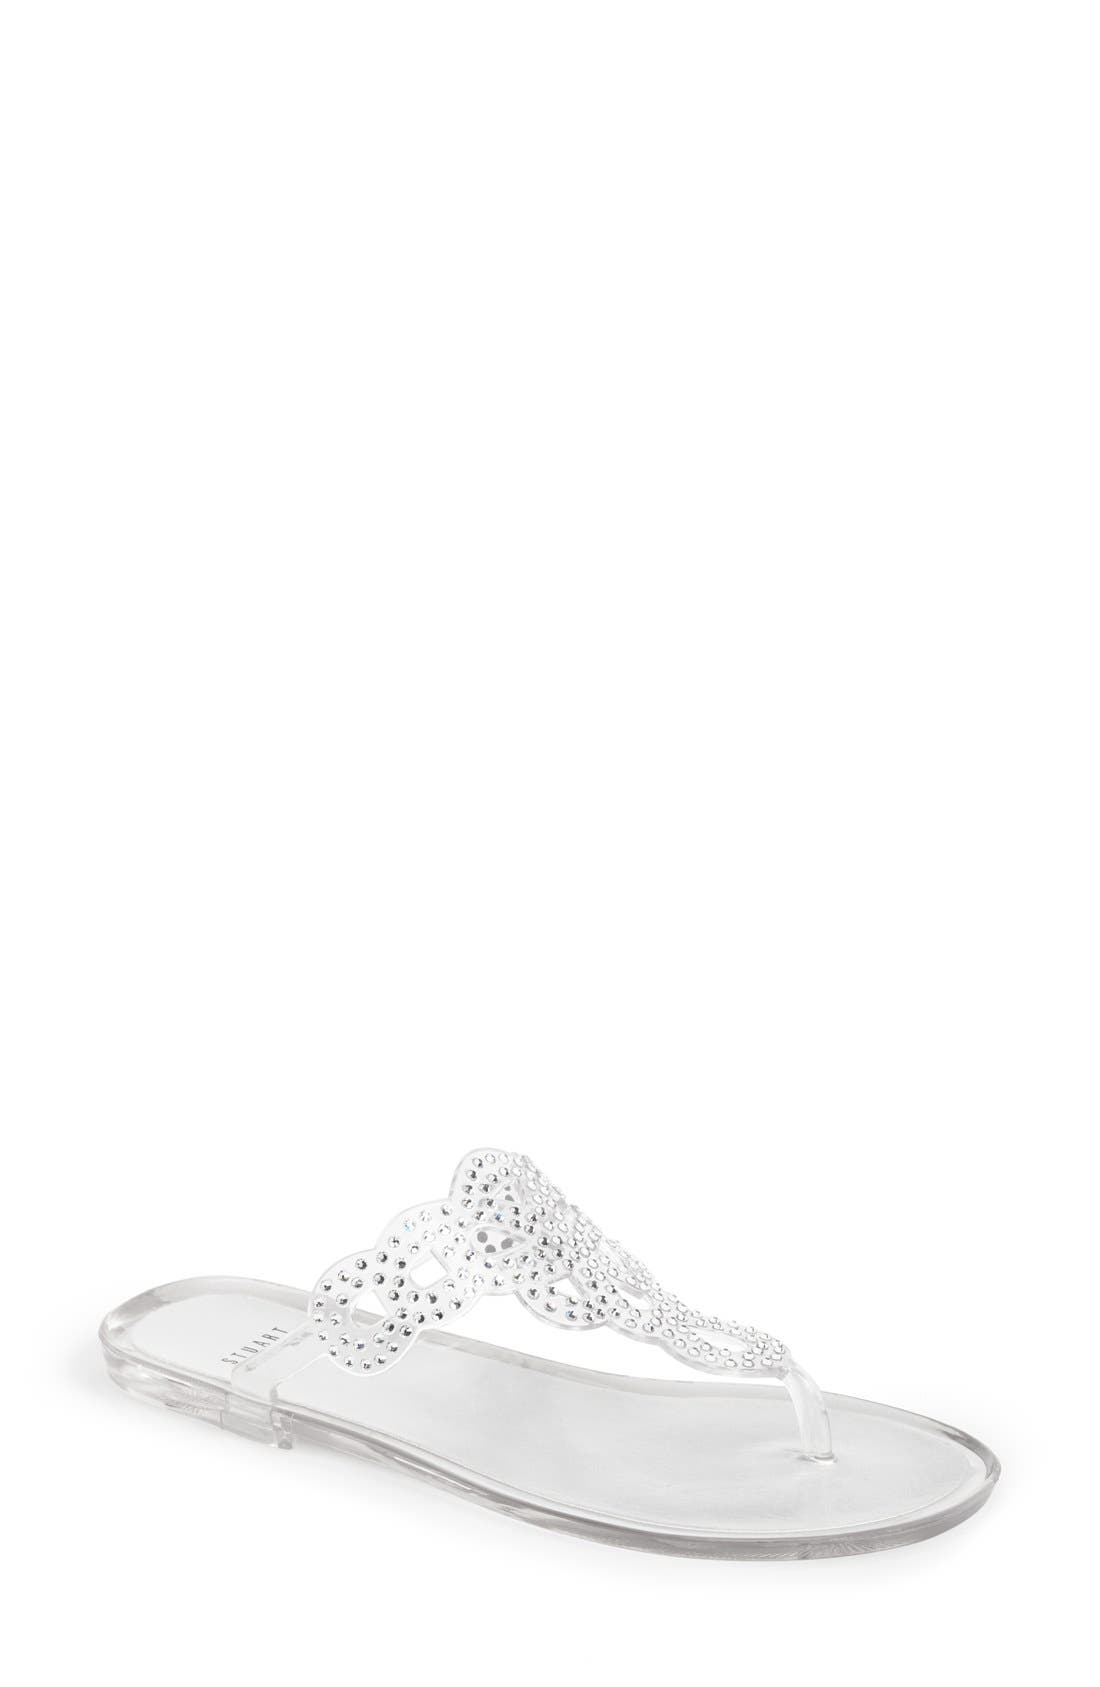 Main Image - Stuart Weitzman 'Mermaid' Crystal Embellished Jelly Sandal (Women)